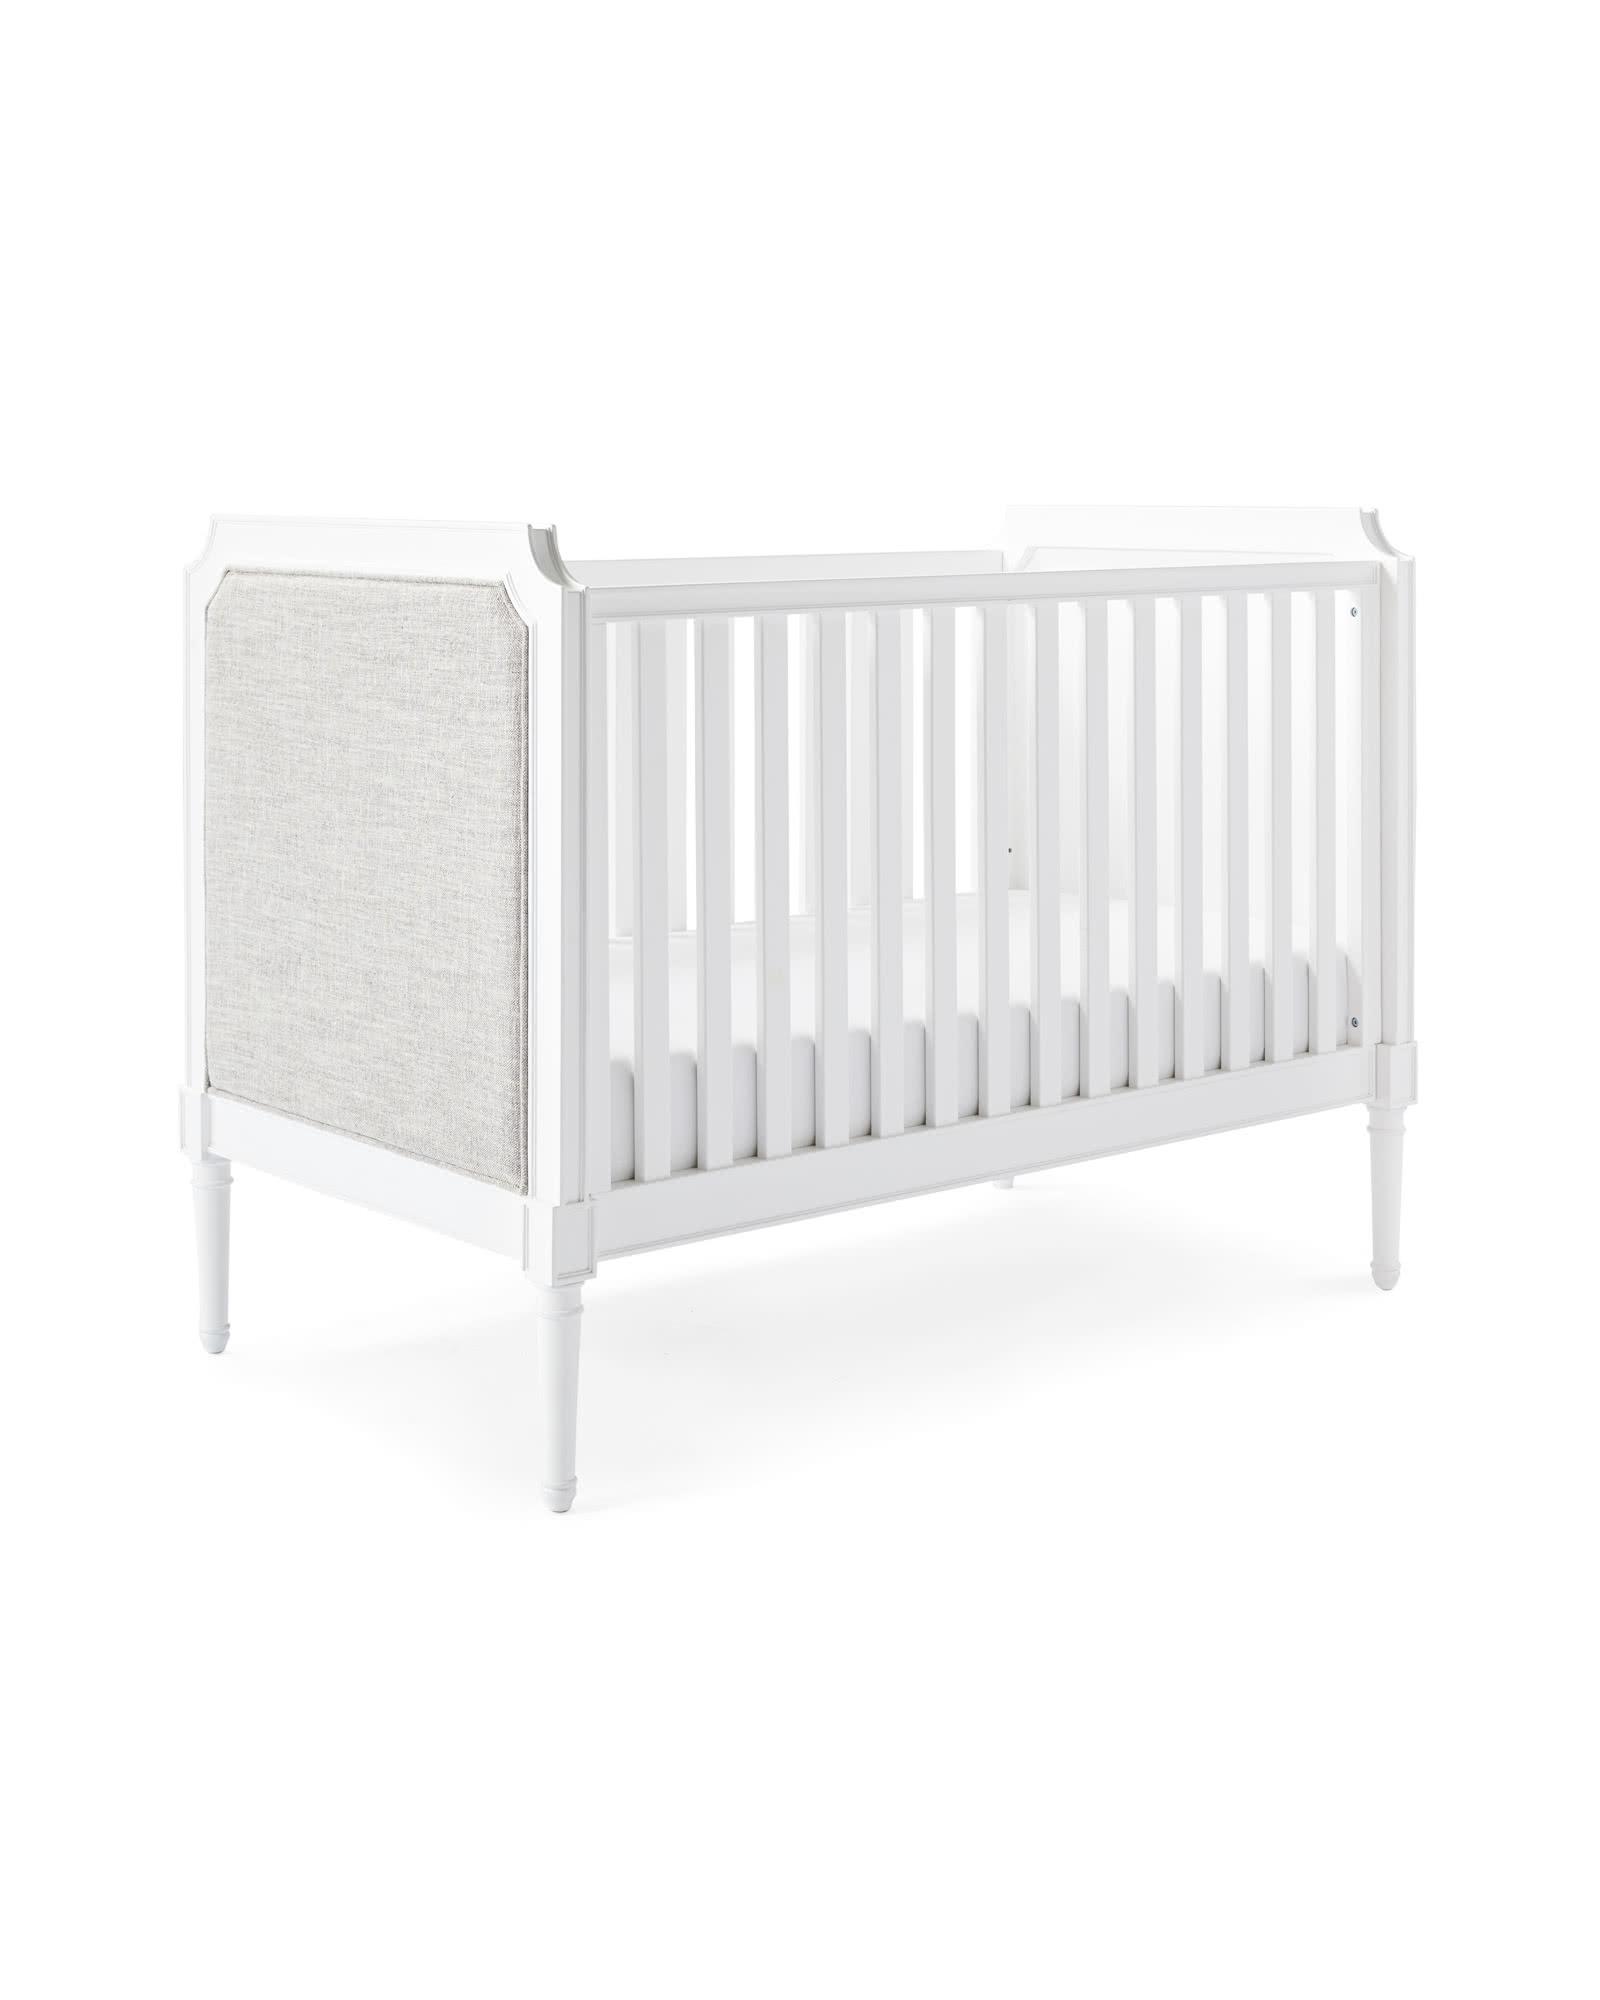 Harbour Cane Upholstered Convertible Crib,